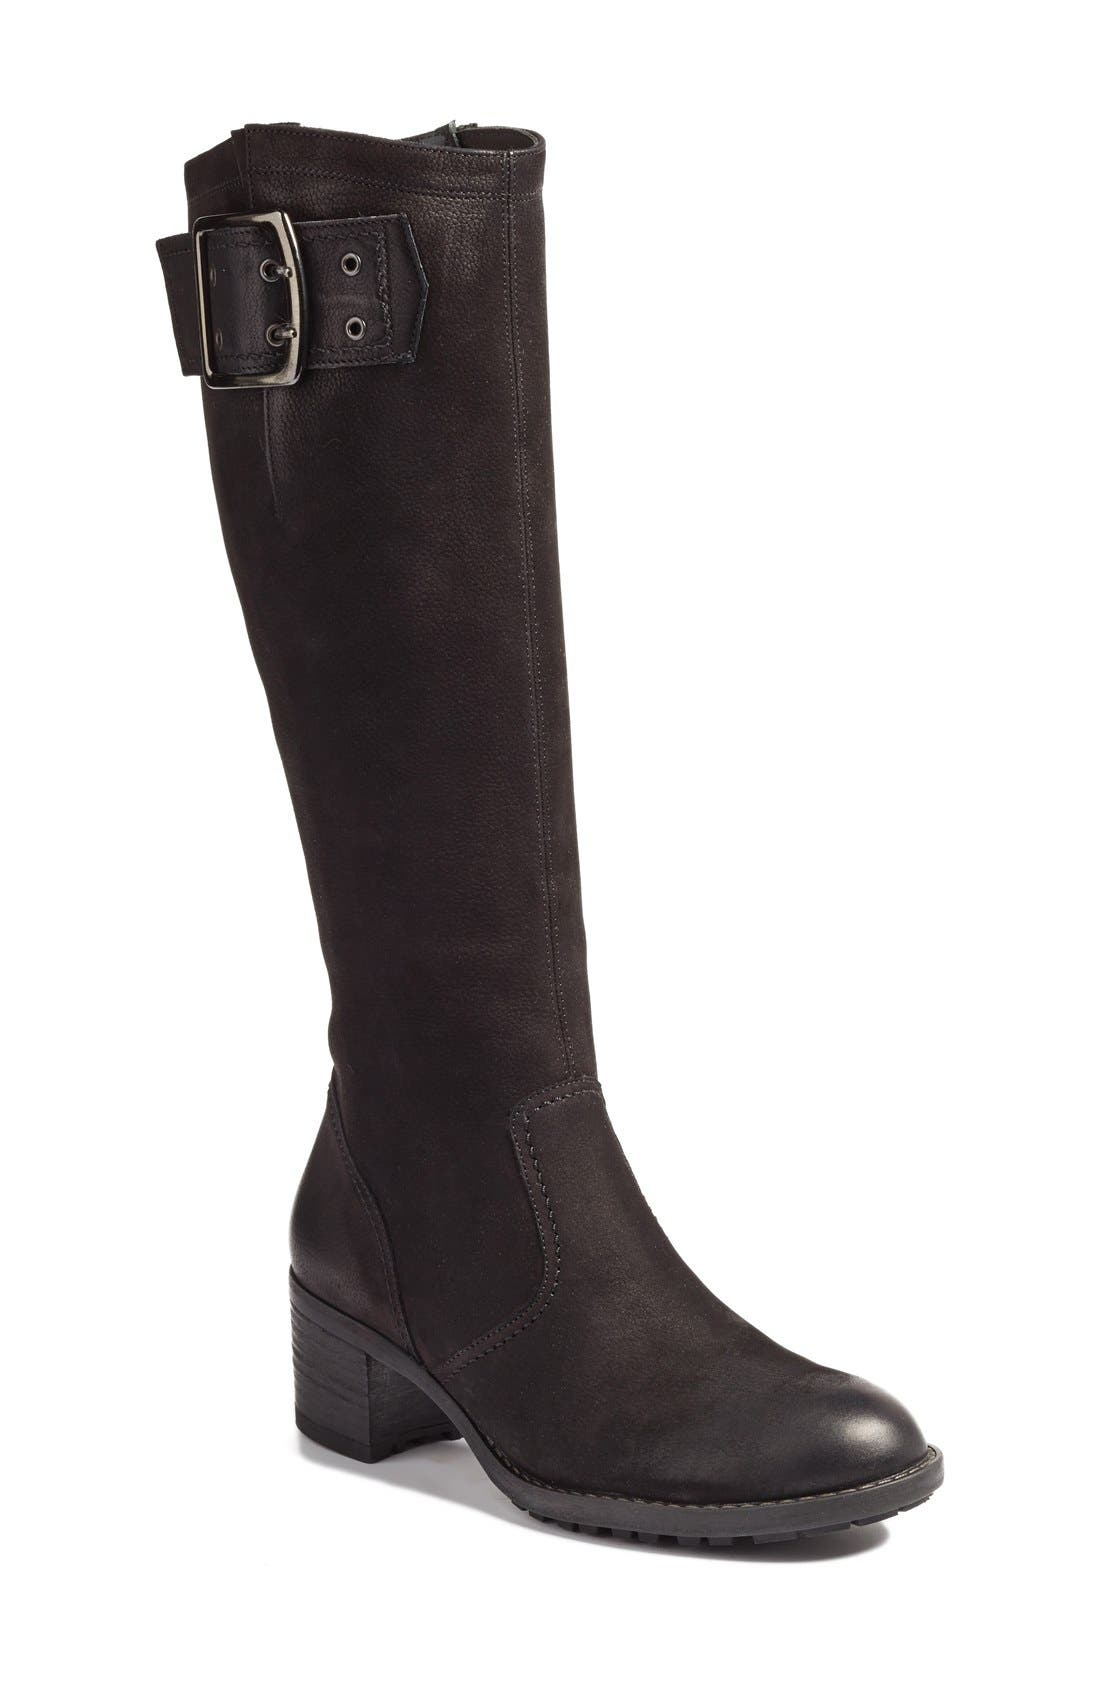 Main Image - Paul Green Kendra Knee High Buckle Boot (Women)